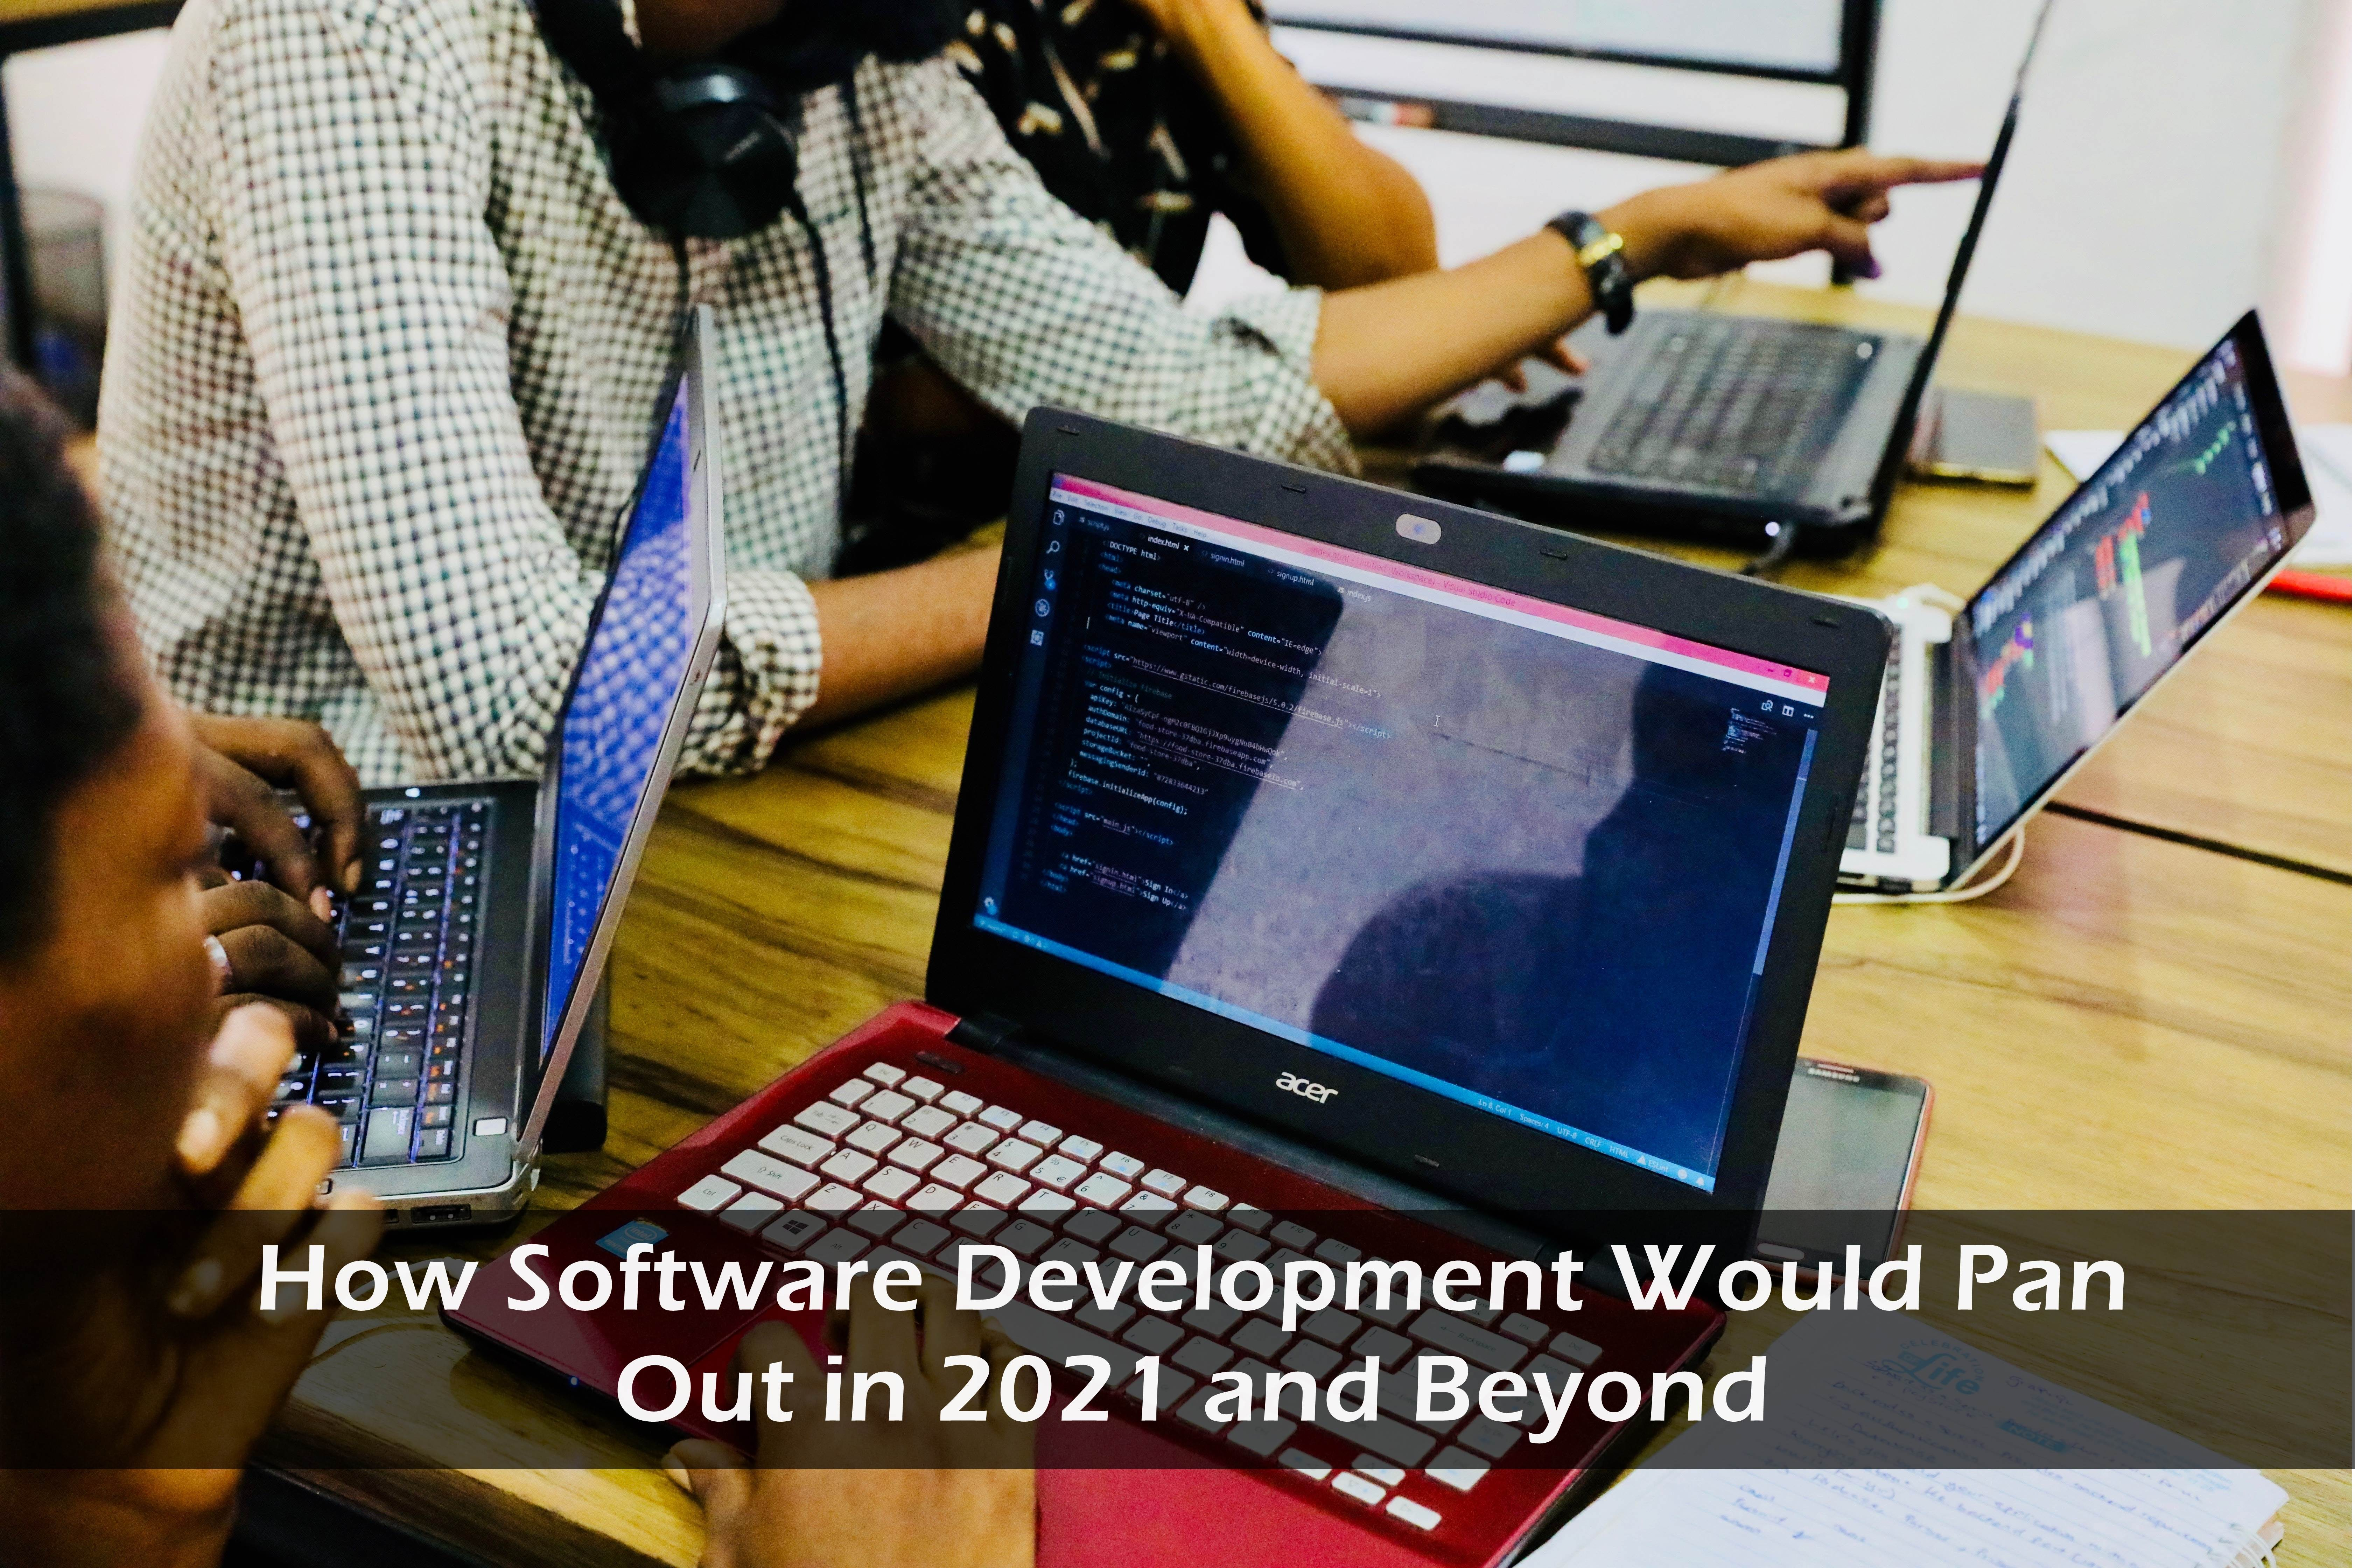 How Software Development Would Pan Out in 2021 and Beyond